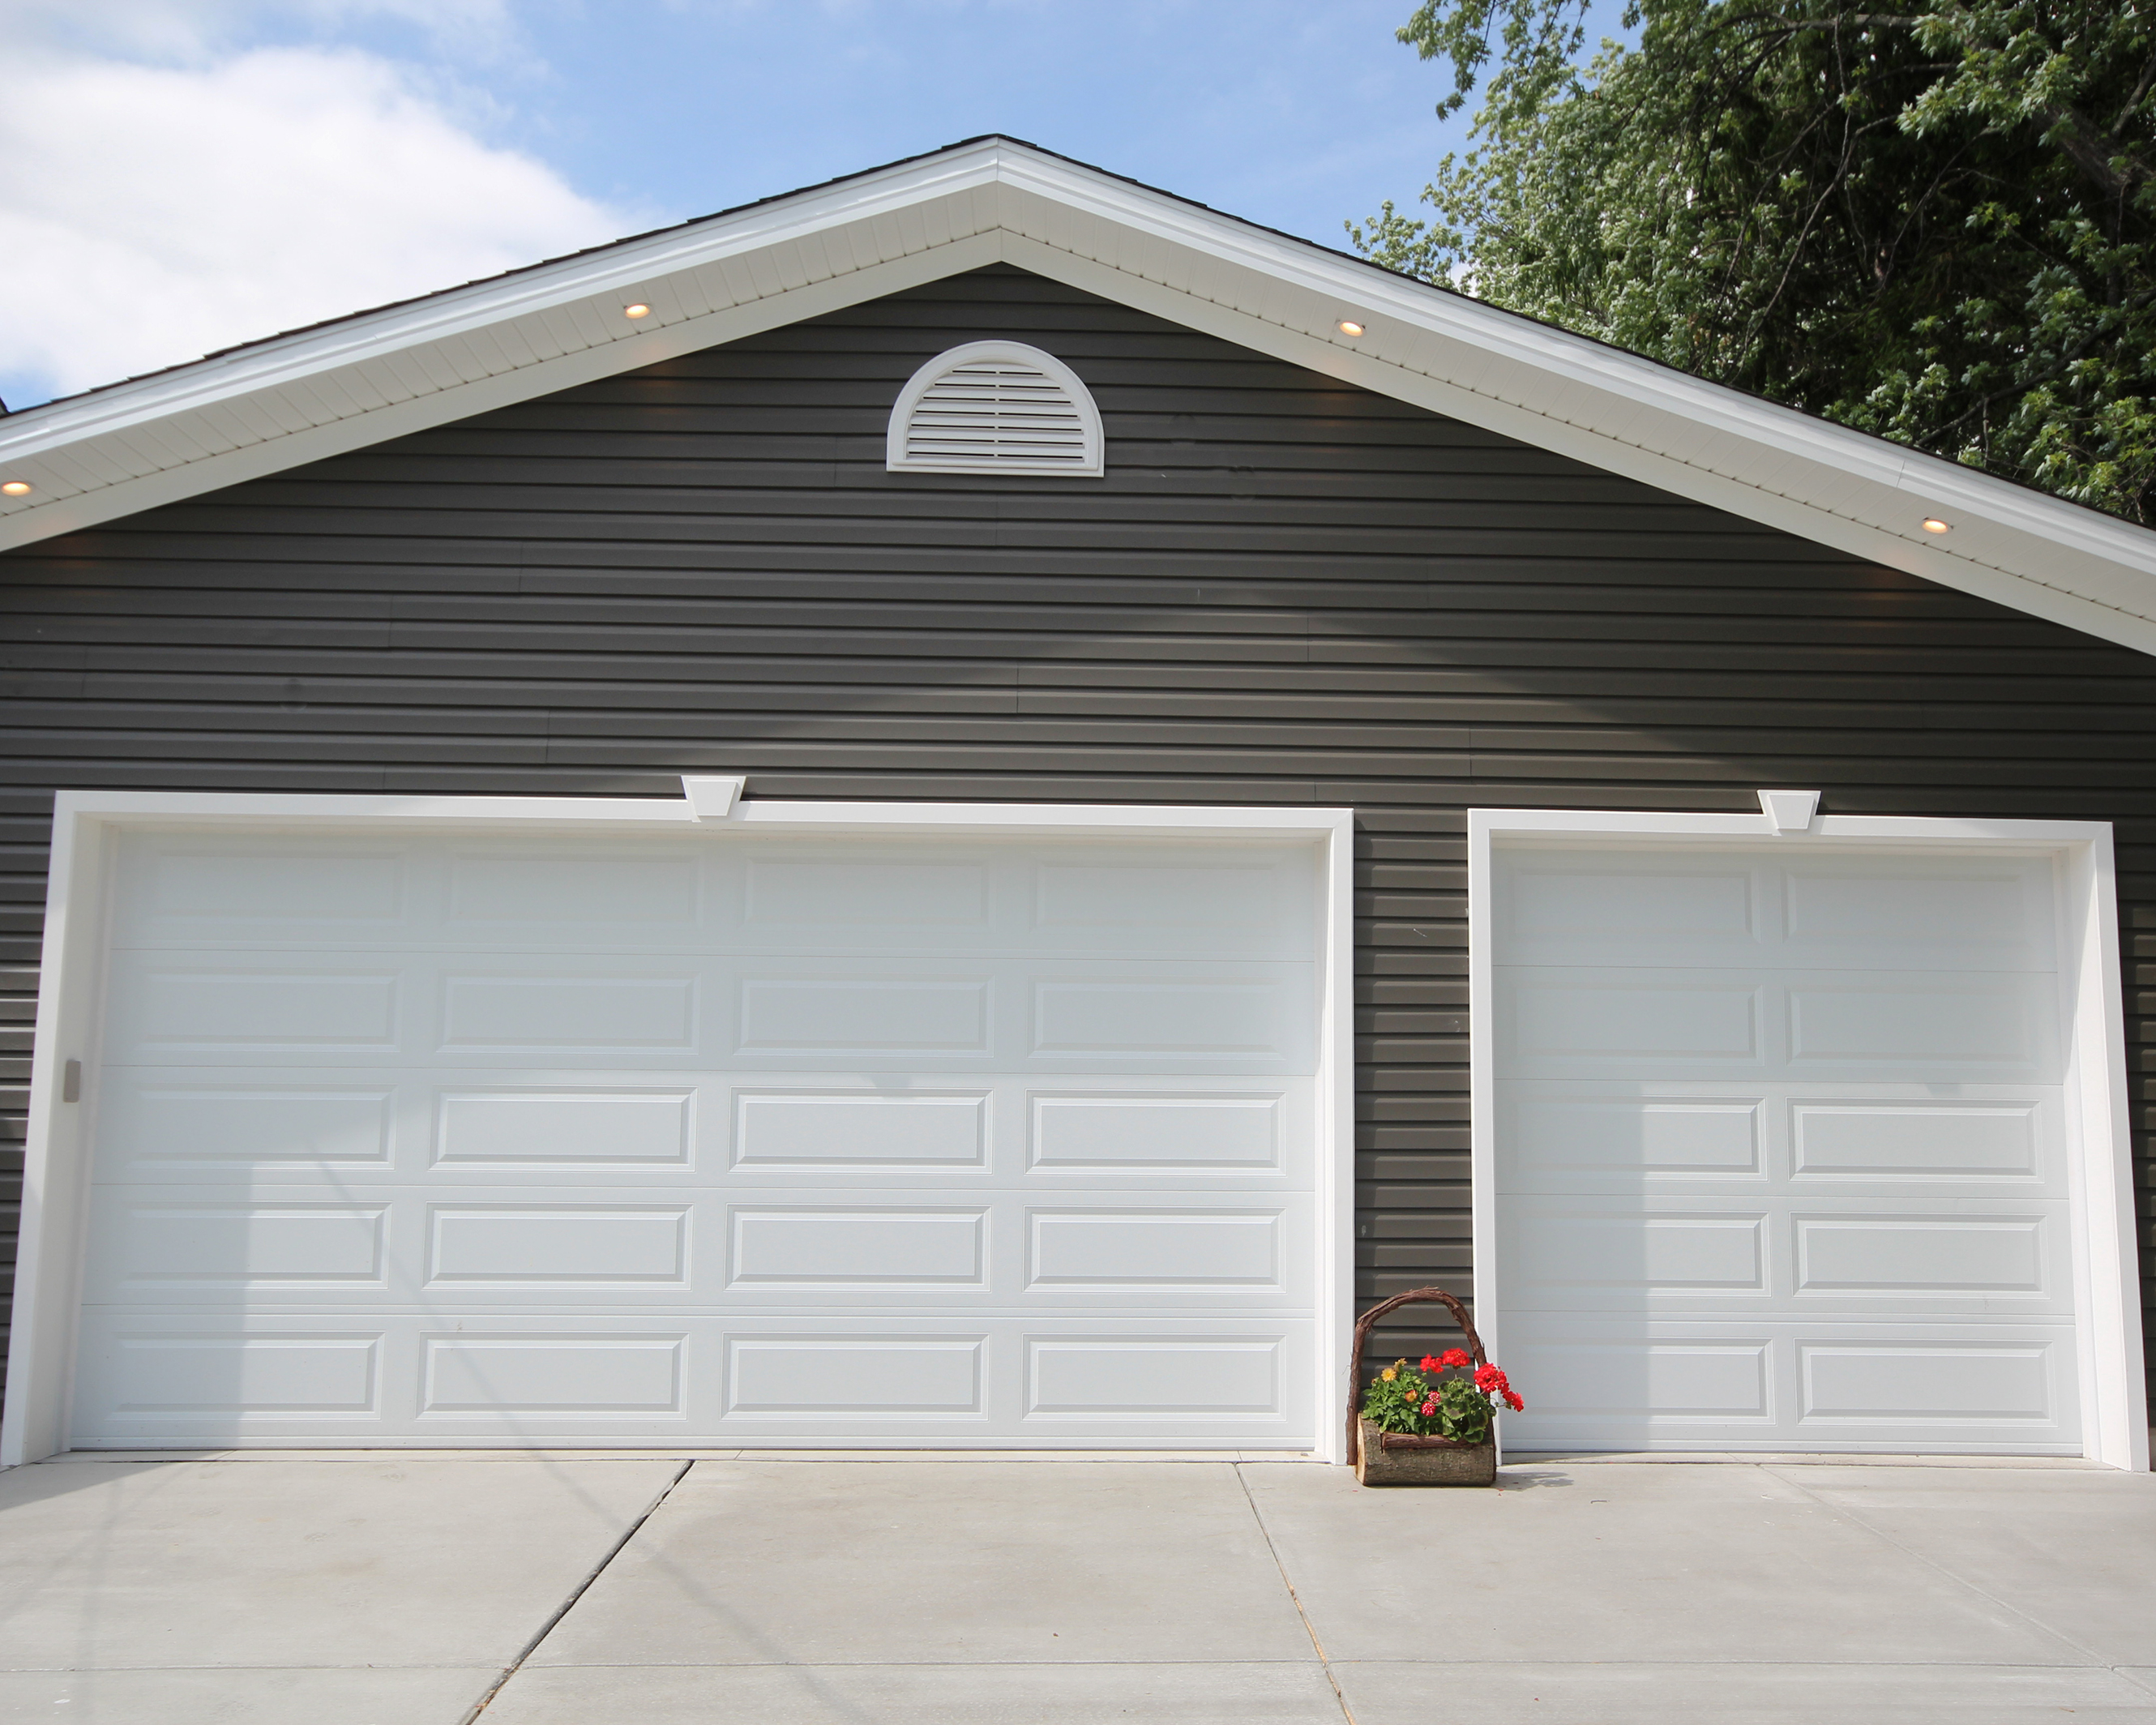 16x8 And 8x8 Raised Panel Garage Doors